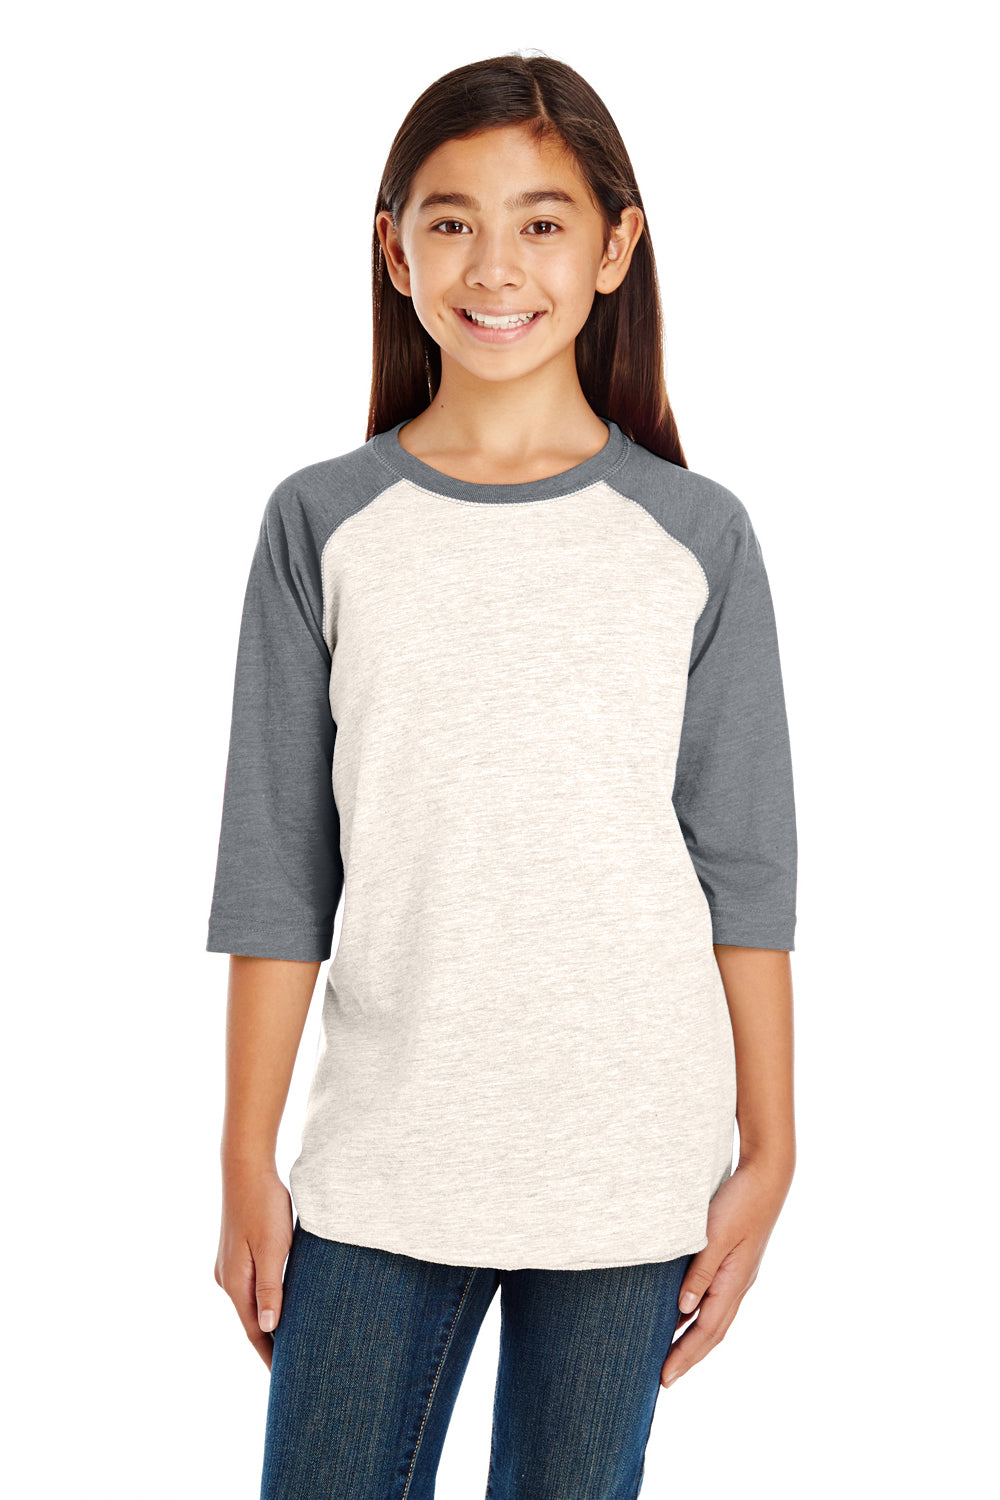 LAT 6130 Fine Jersey 3/4 Sleeve Crewneck T-Shirt Heather Natural/Granite Grey Front